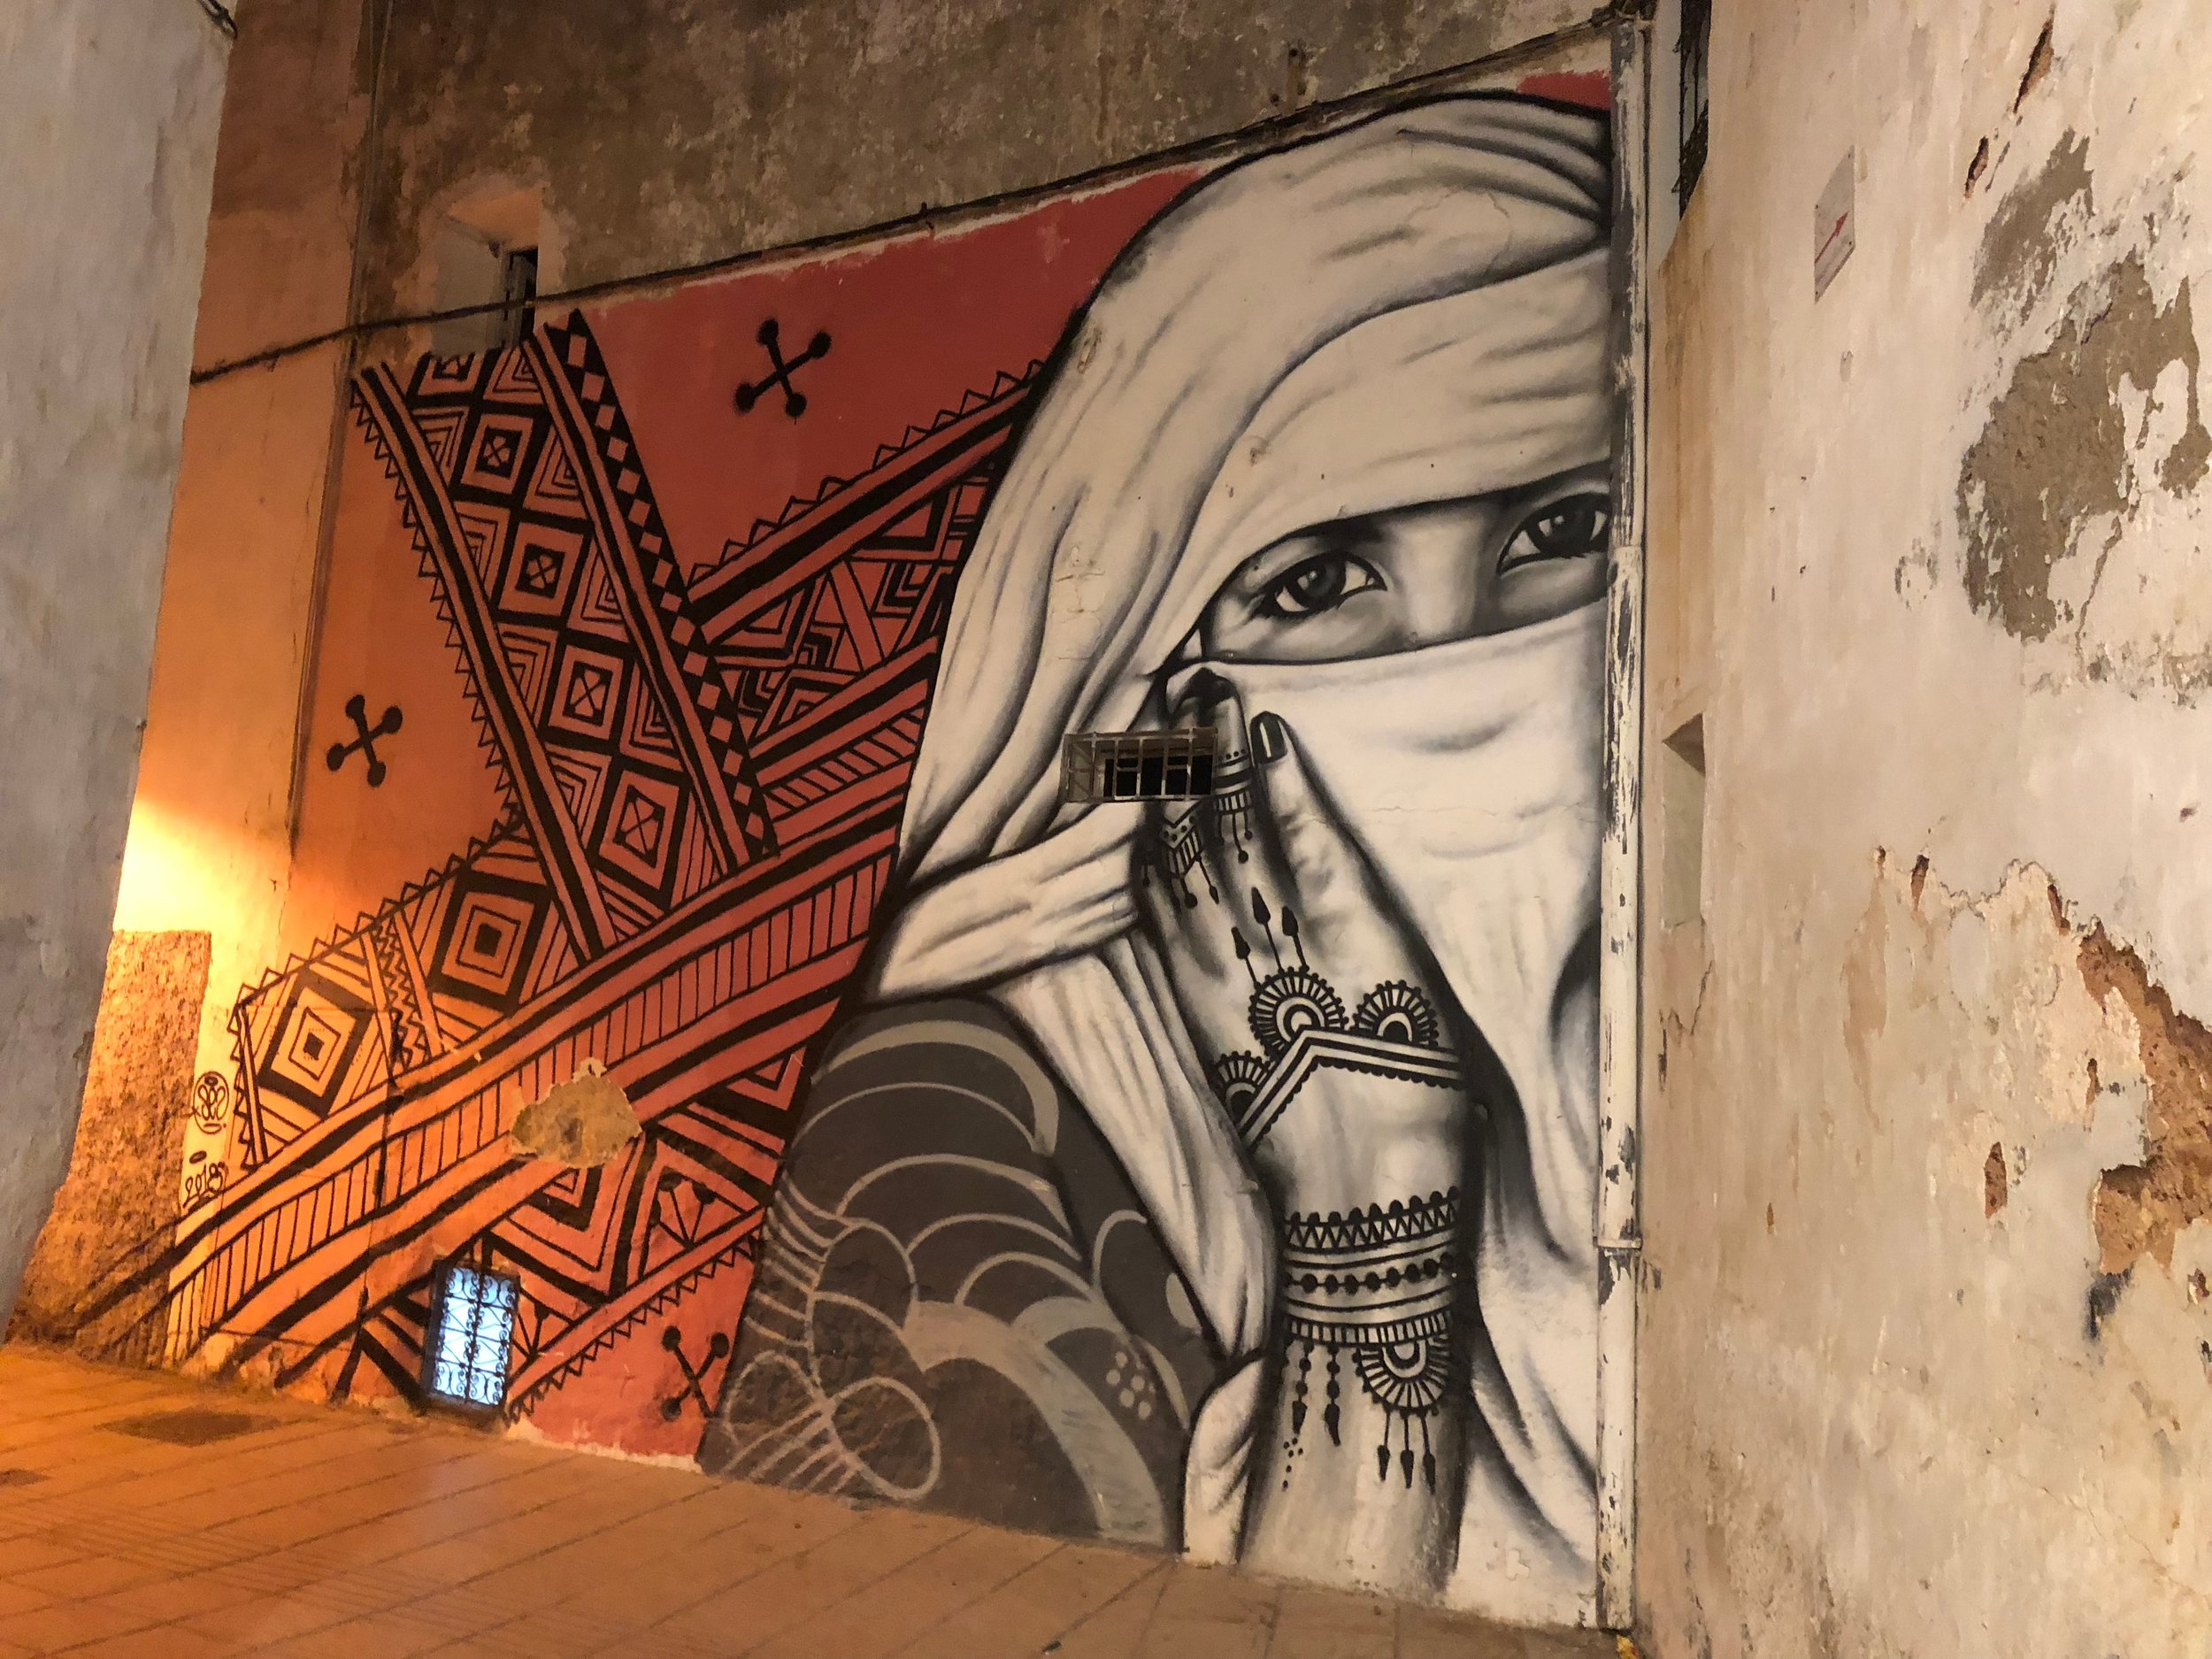 A wall mural I spotted in an alley in Rabat, Morocco